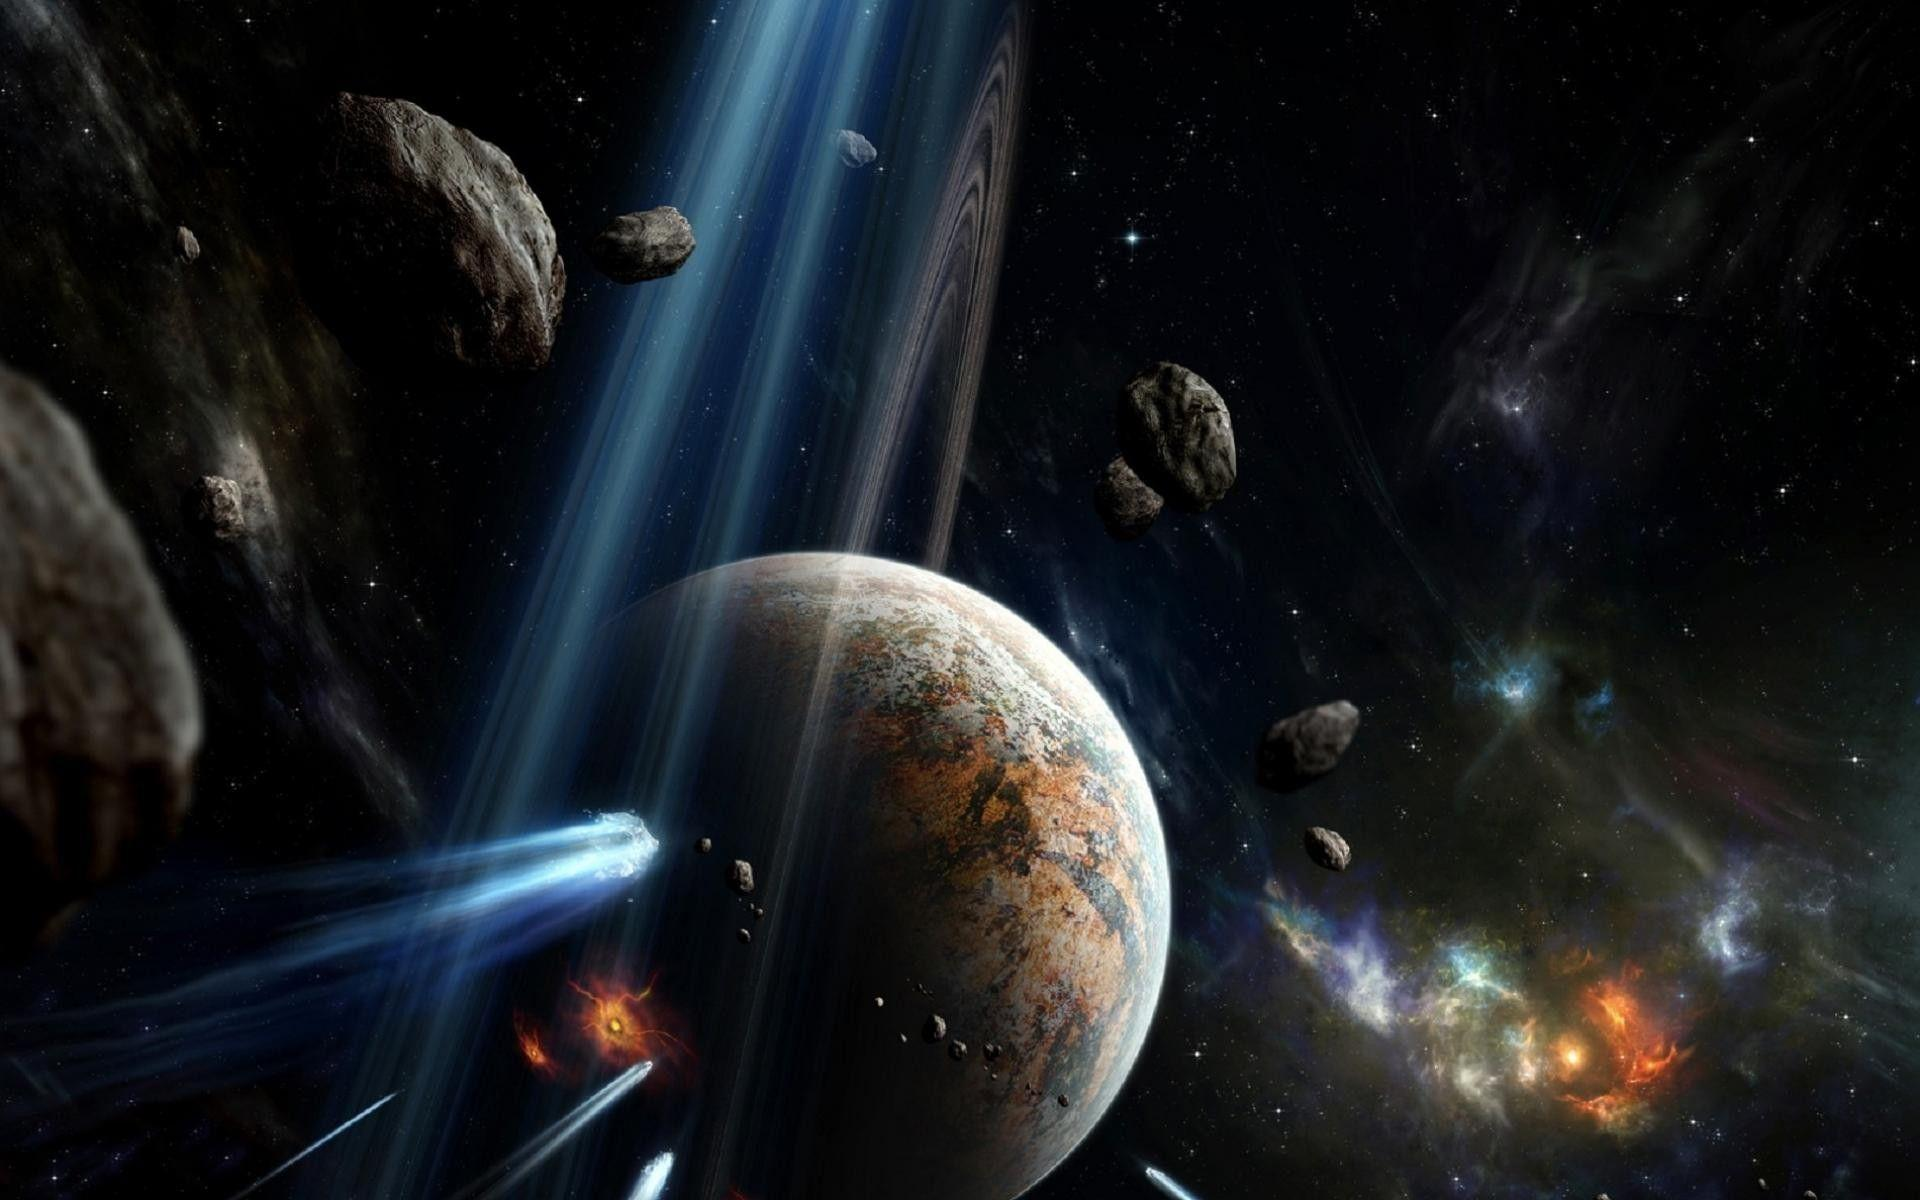 Outer Space Planets Hd Backgrounds Wallpapers 37 HD Wallpapers